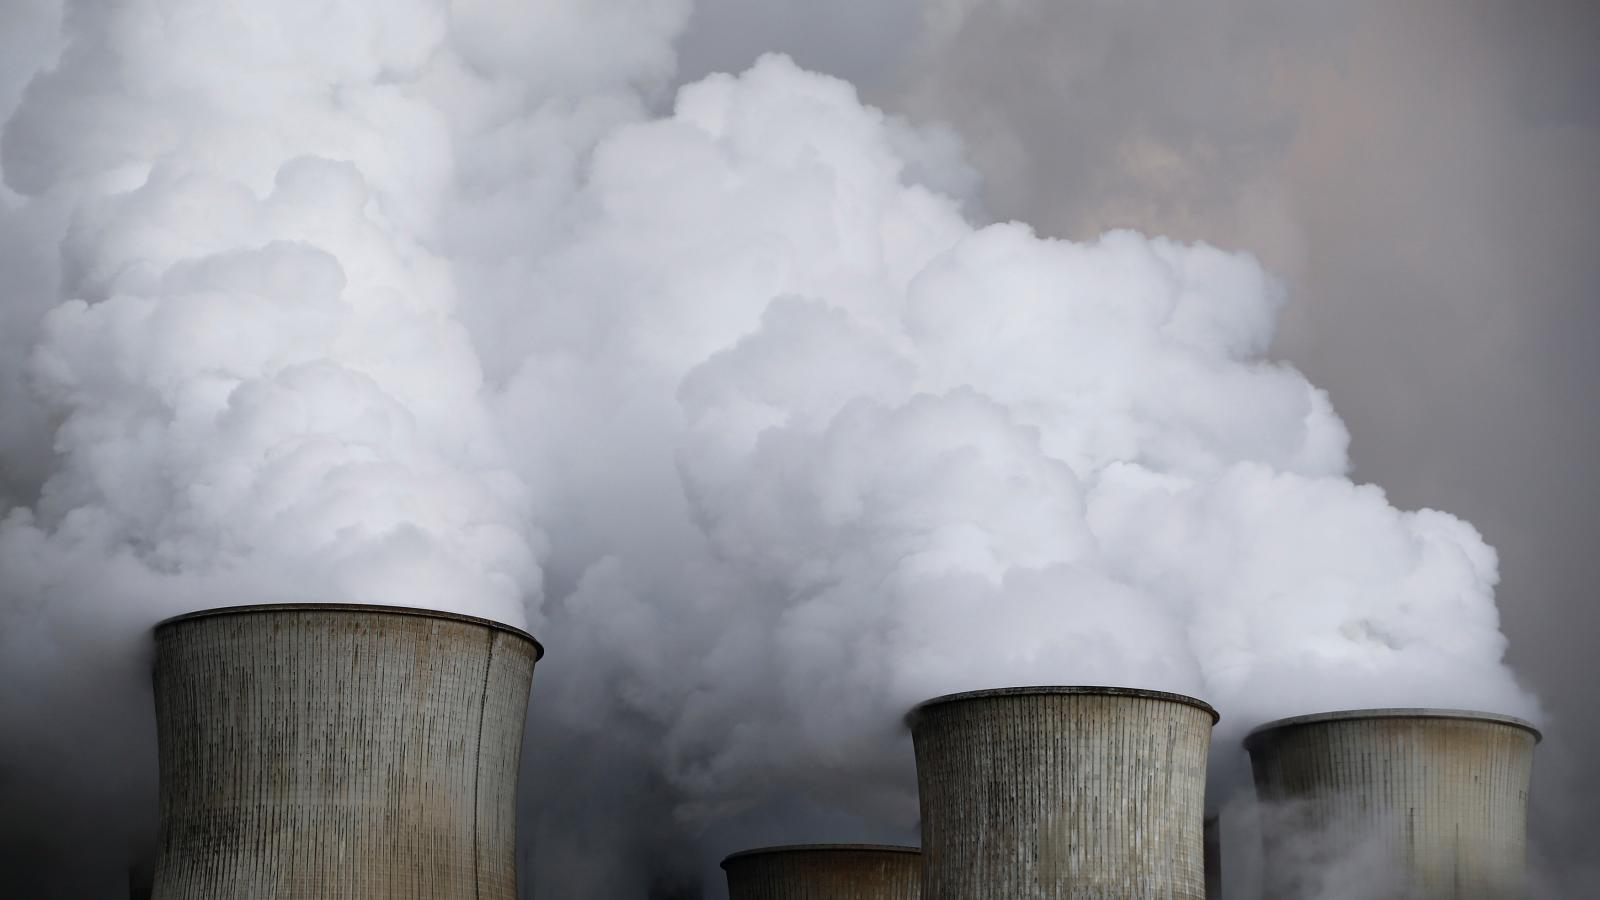 China's provinces building coal plants in defiance of